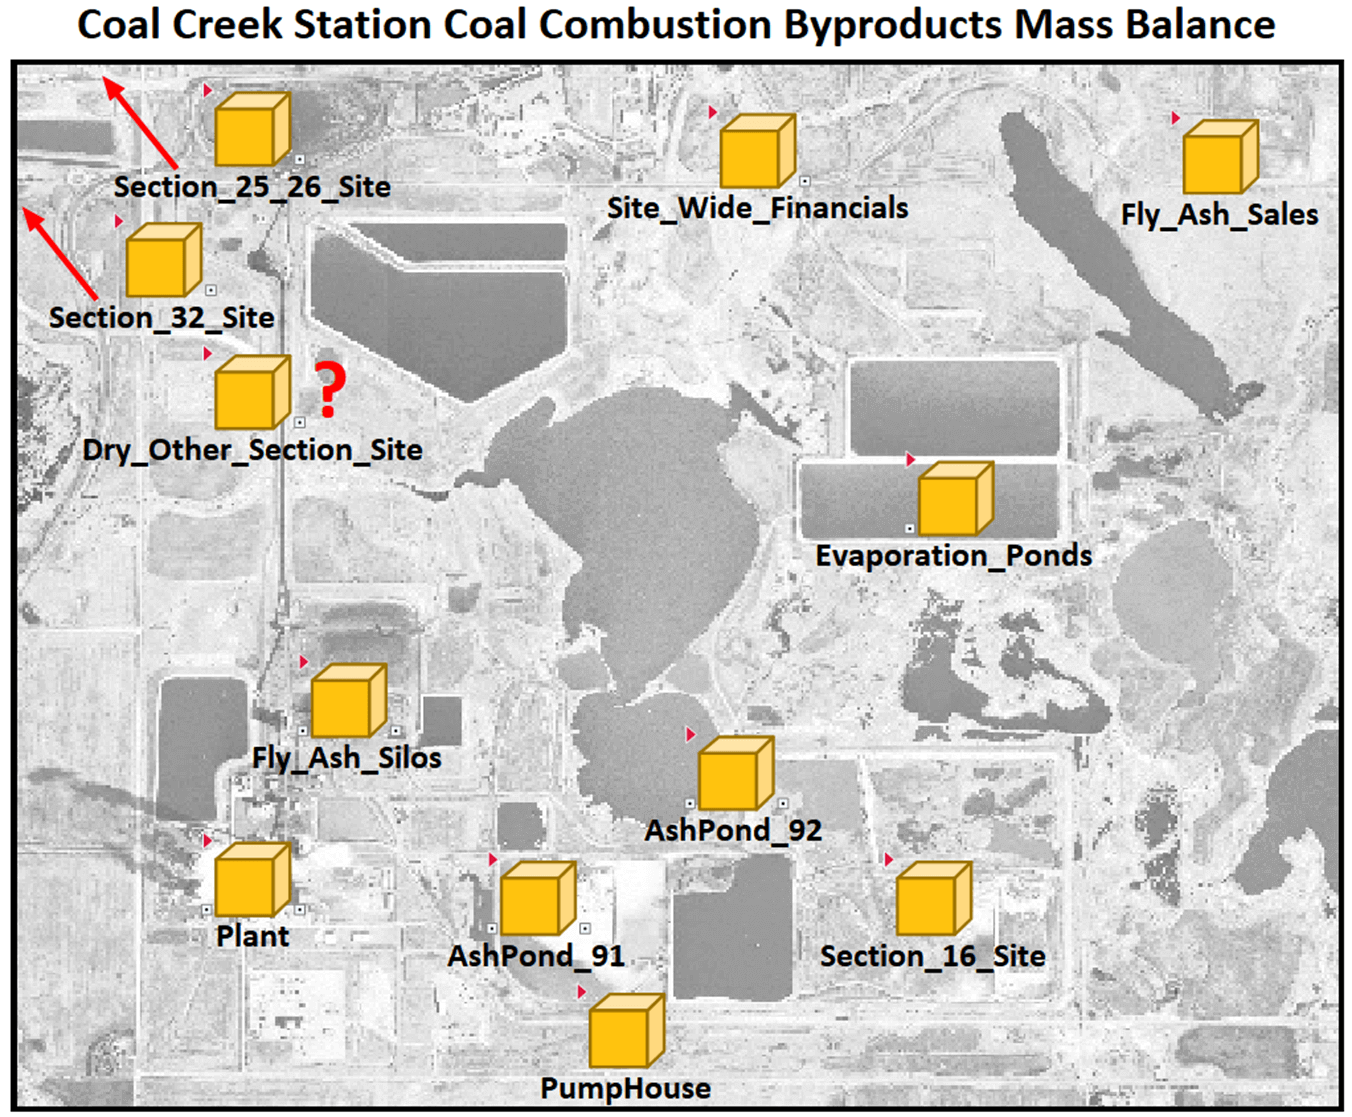 Coal Creek Station coal combustion byproducts mass balance